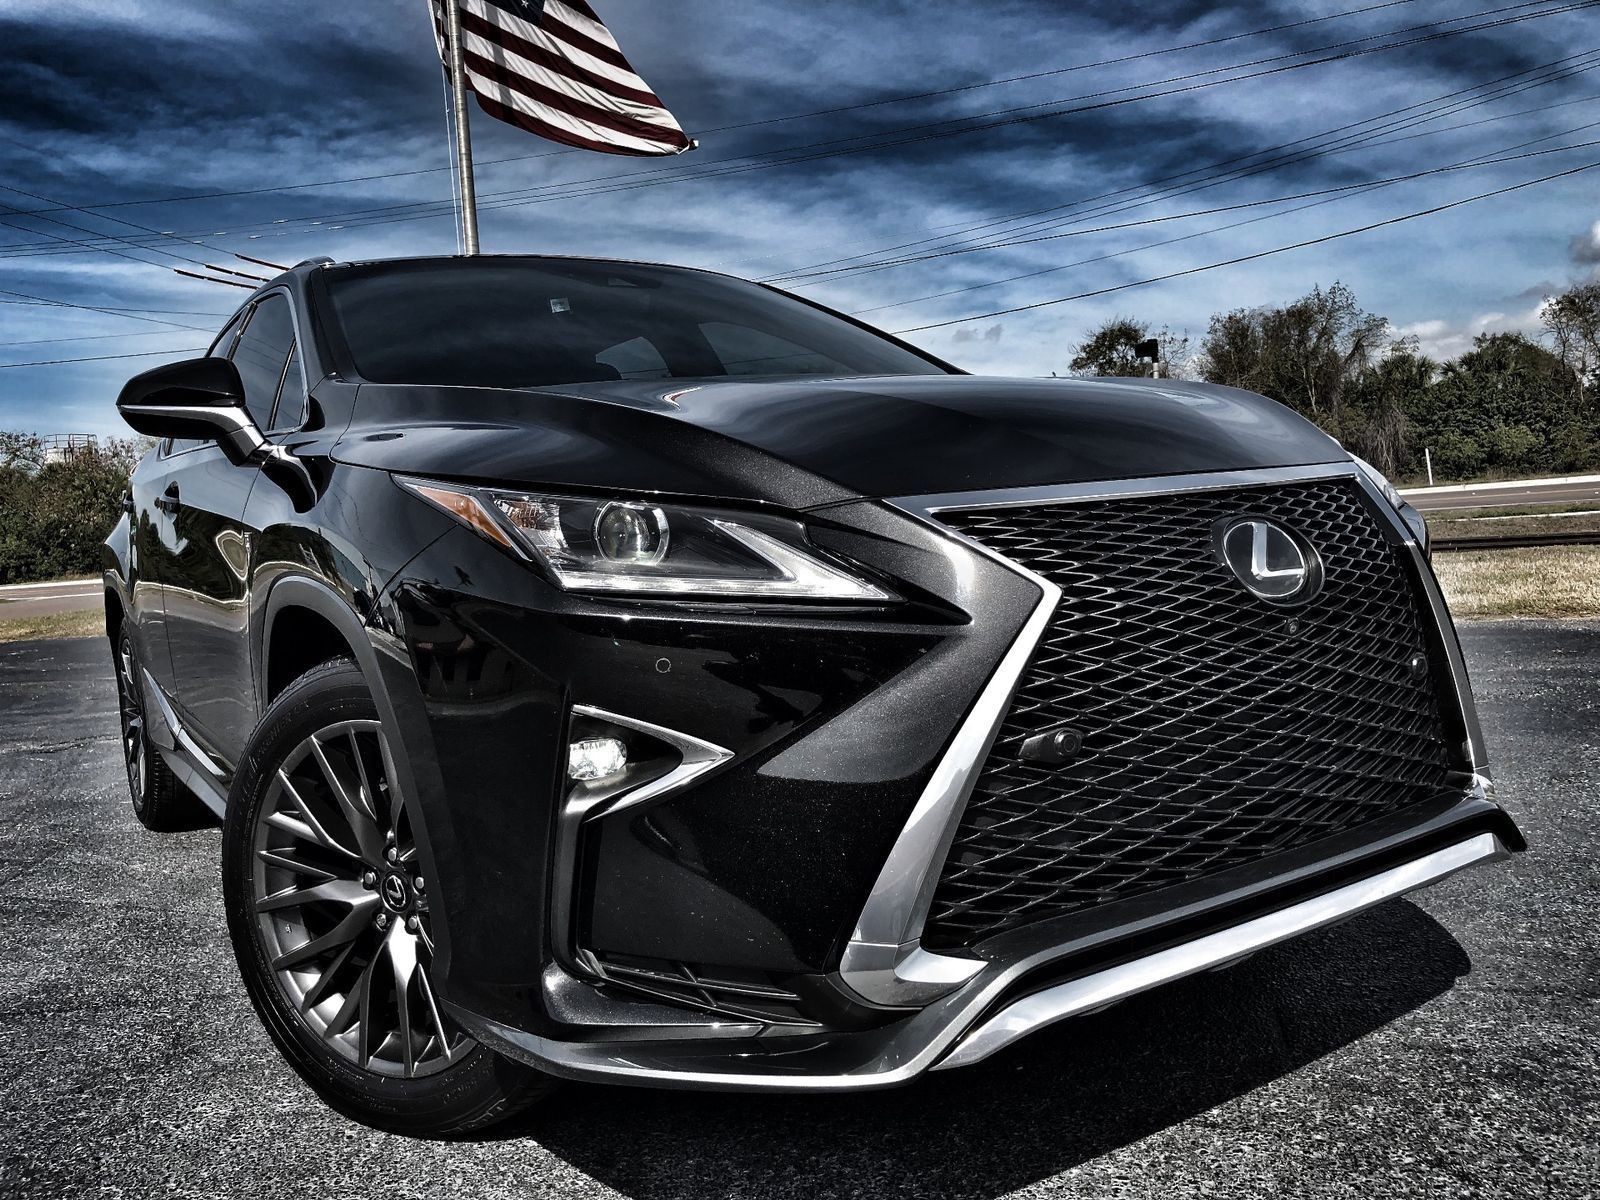 2016 Honda Accord Sport For Sale >> Used 2016 Lexus RX F SPORT RX350 BLACK/BLACK LOADED RX350*F SPORT*CAVIAR/BLACK LEATHER*PANO*12 ...